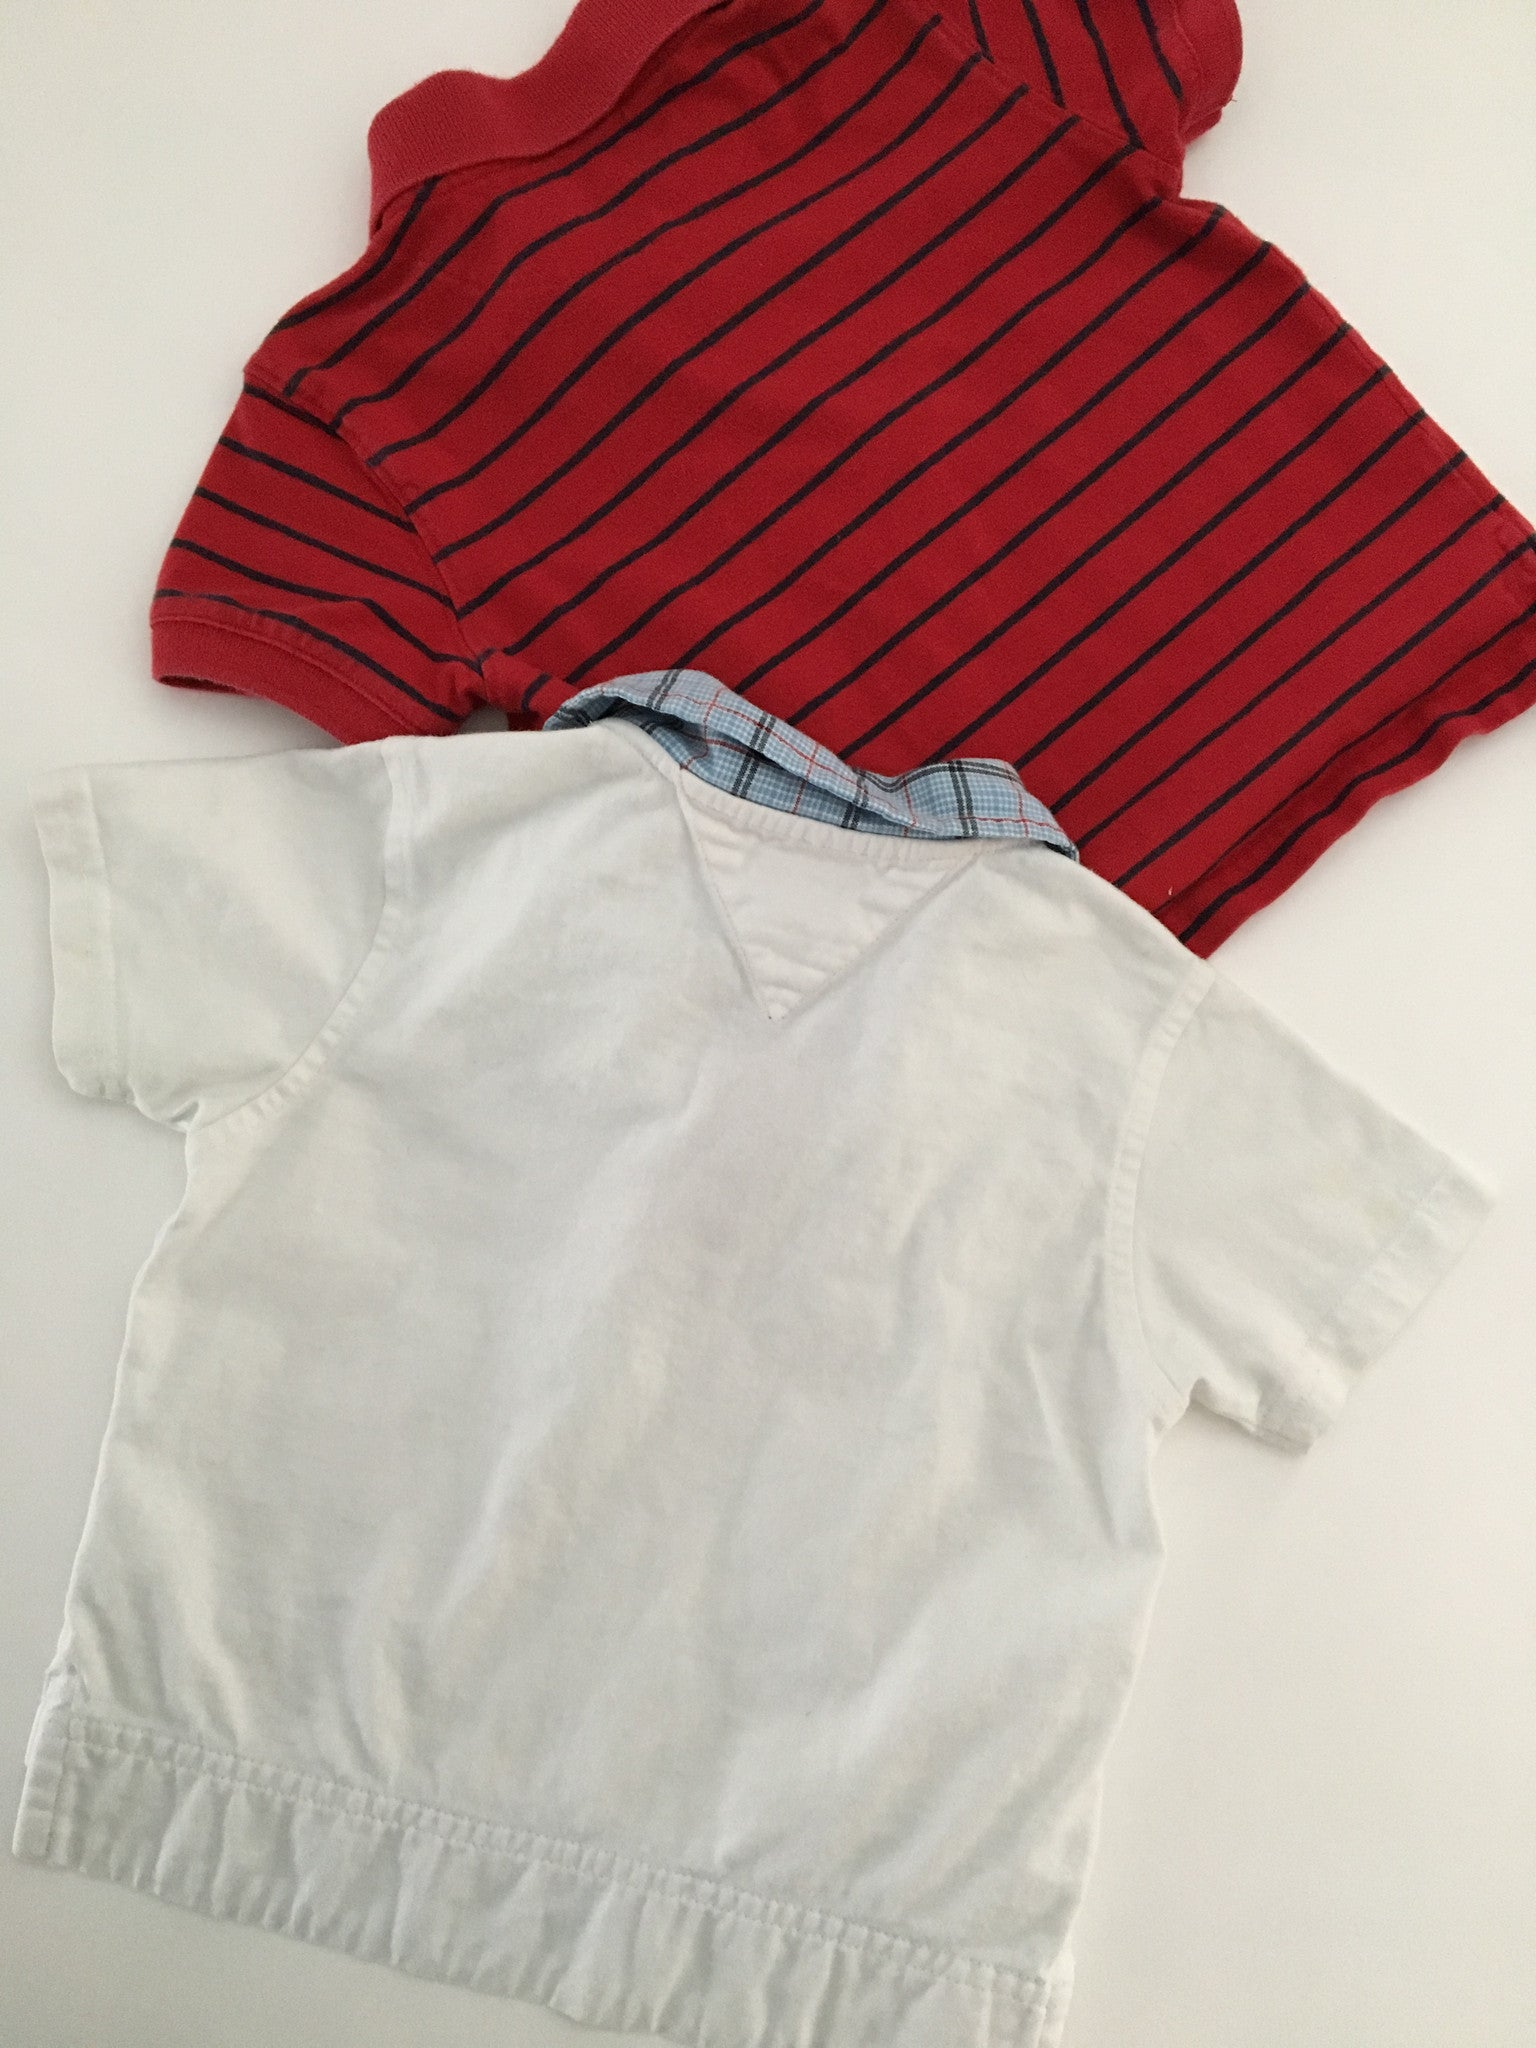 Baby Gap + Tommy Hilfiger Golf Shirts | 12-18M